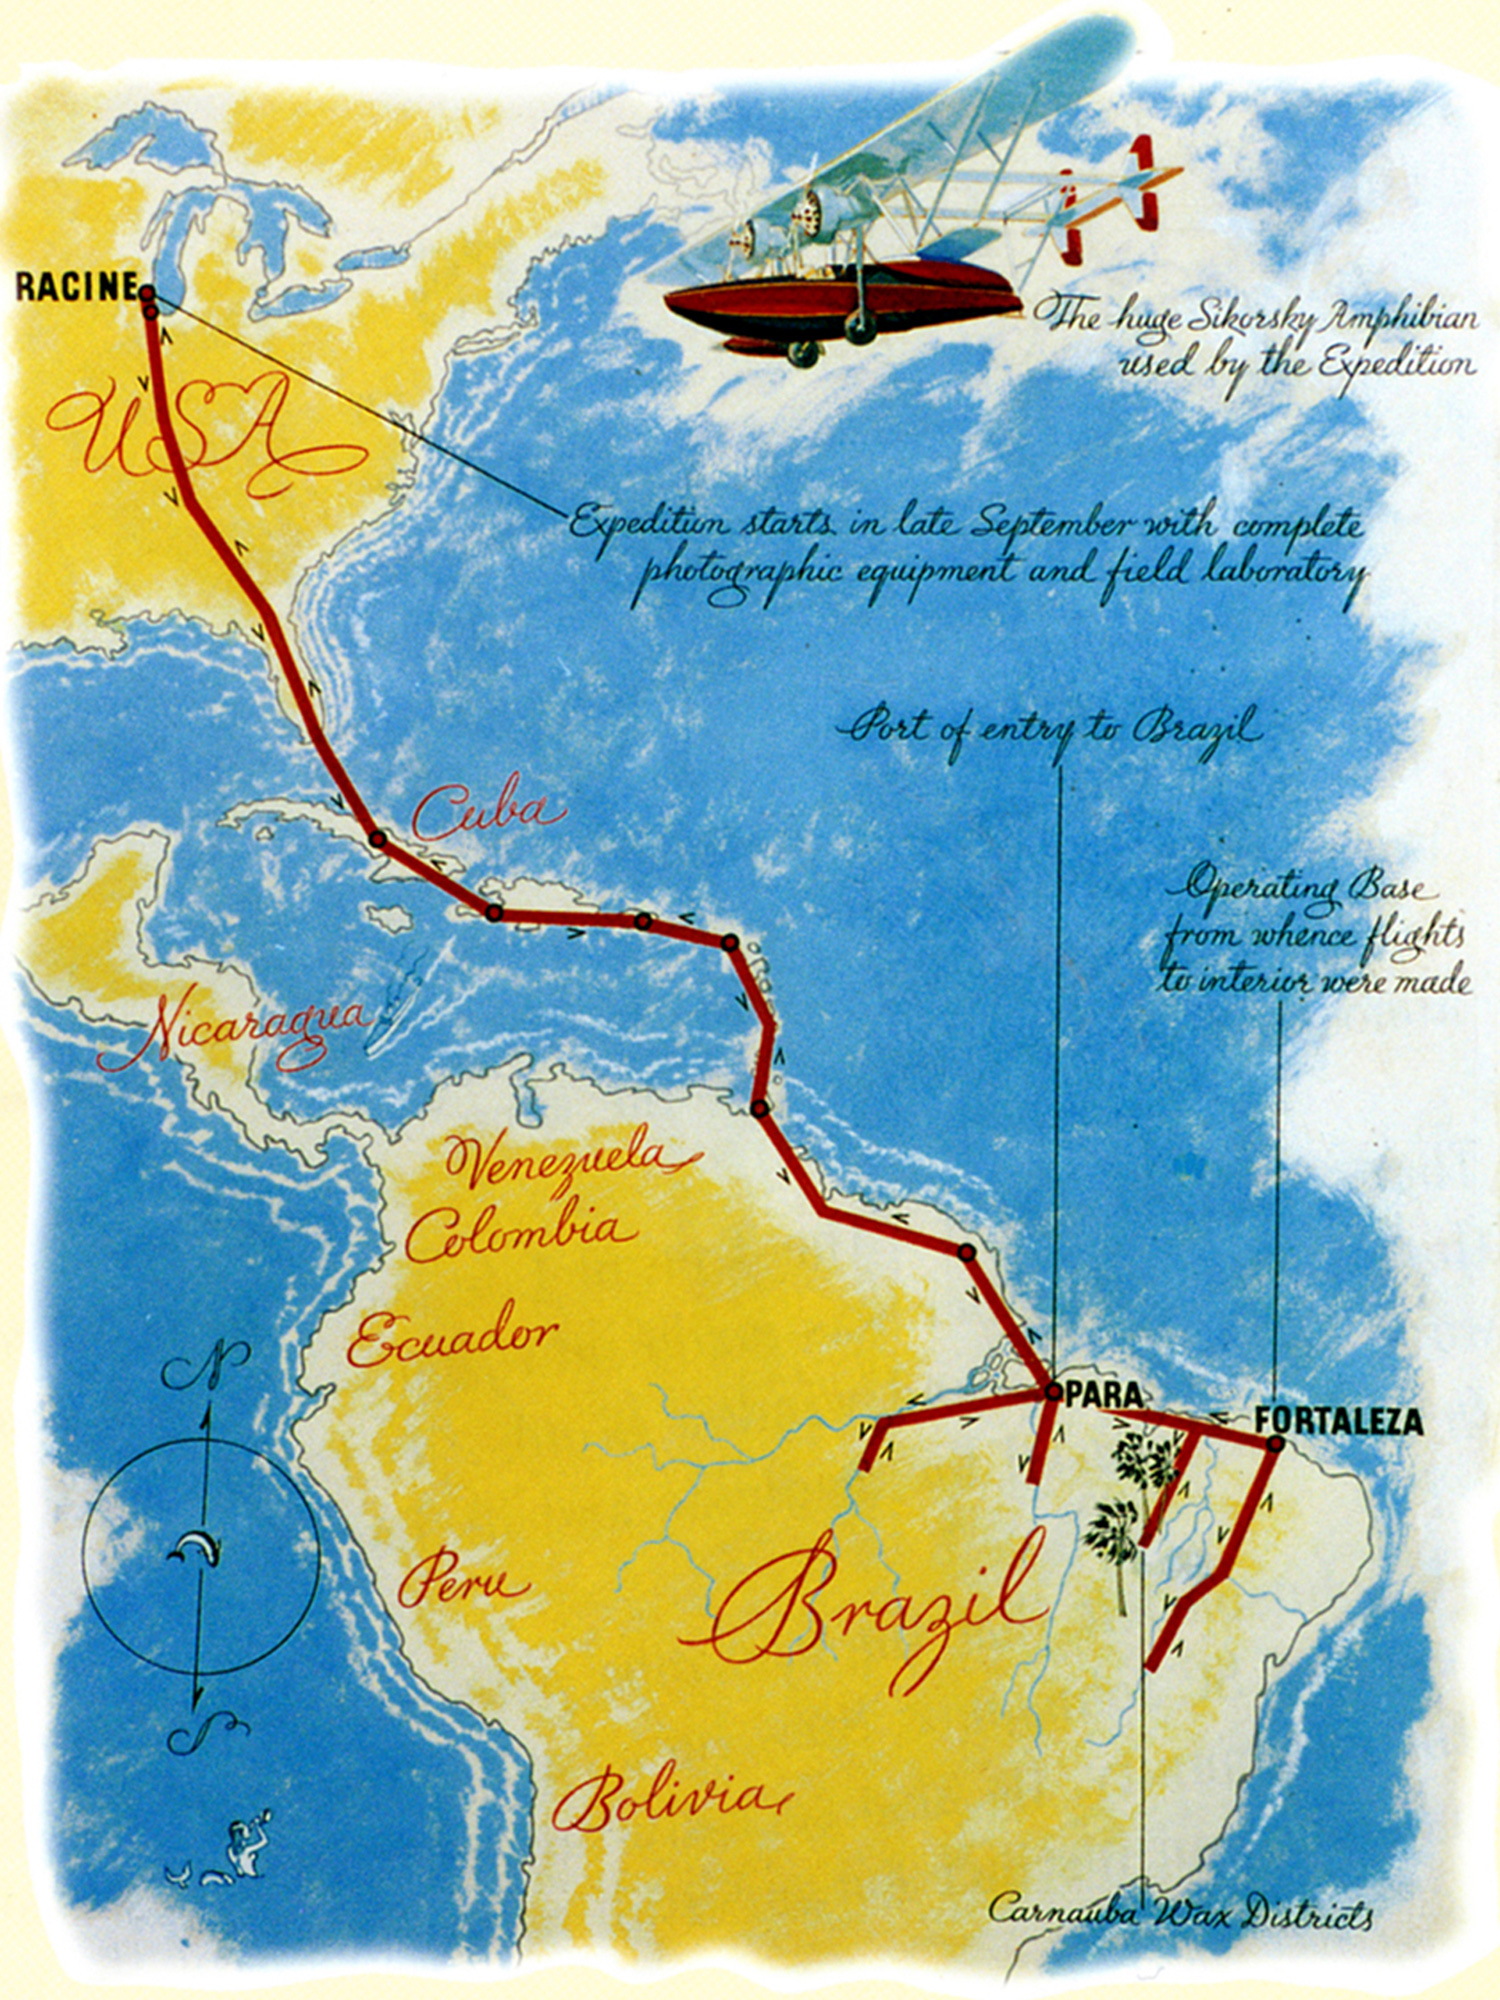 H.F. Johnson Jr.'s 1935 flight path to source carnauba palm wax in Brazil.